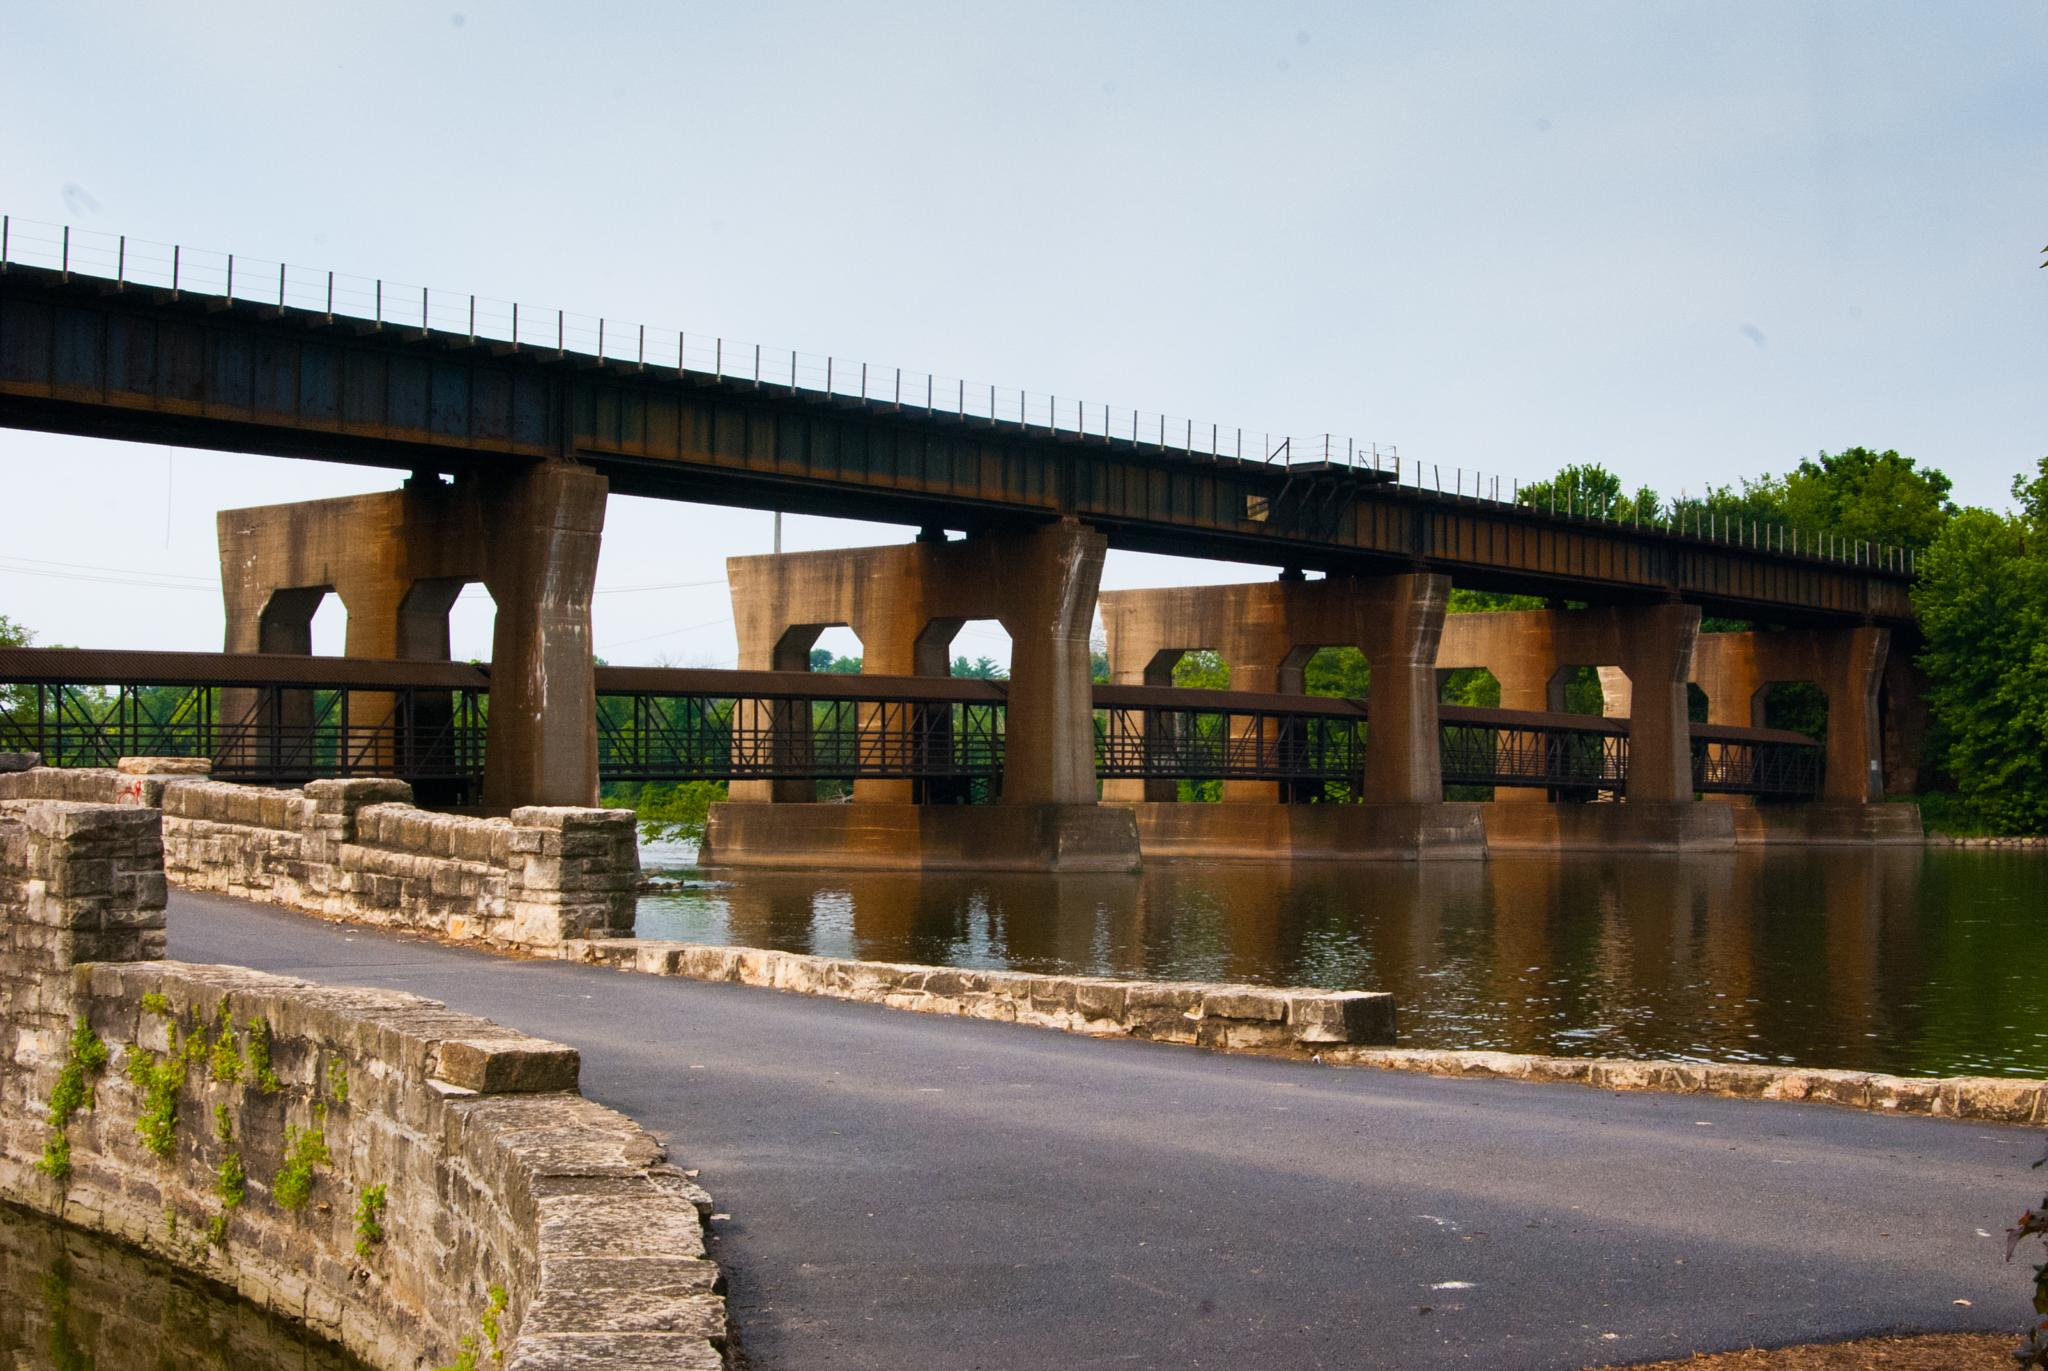 Bridge over Fox River by mgrphotography